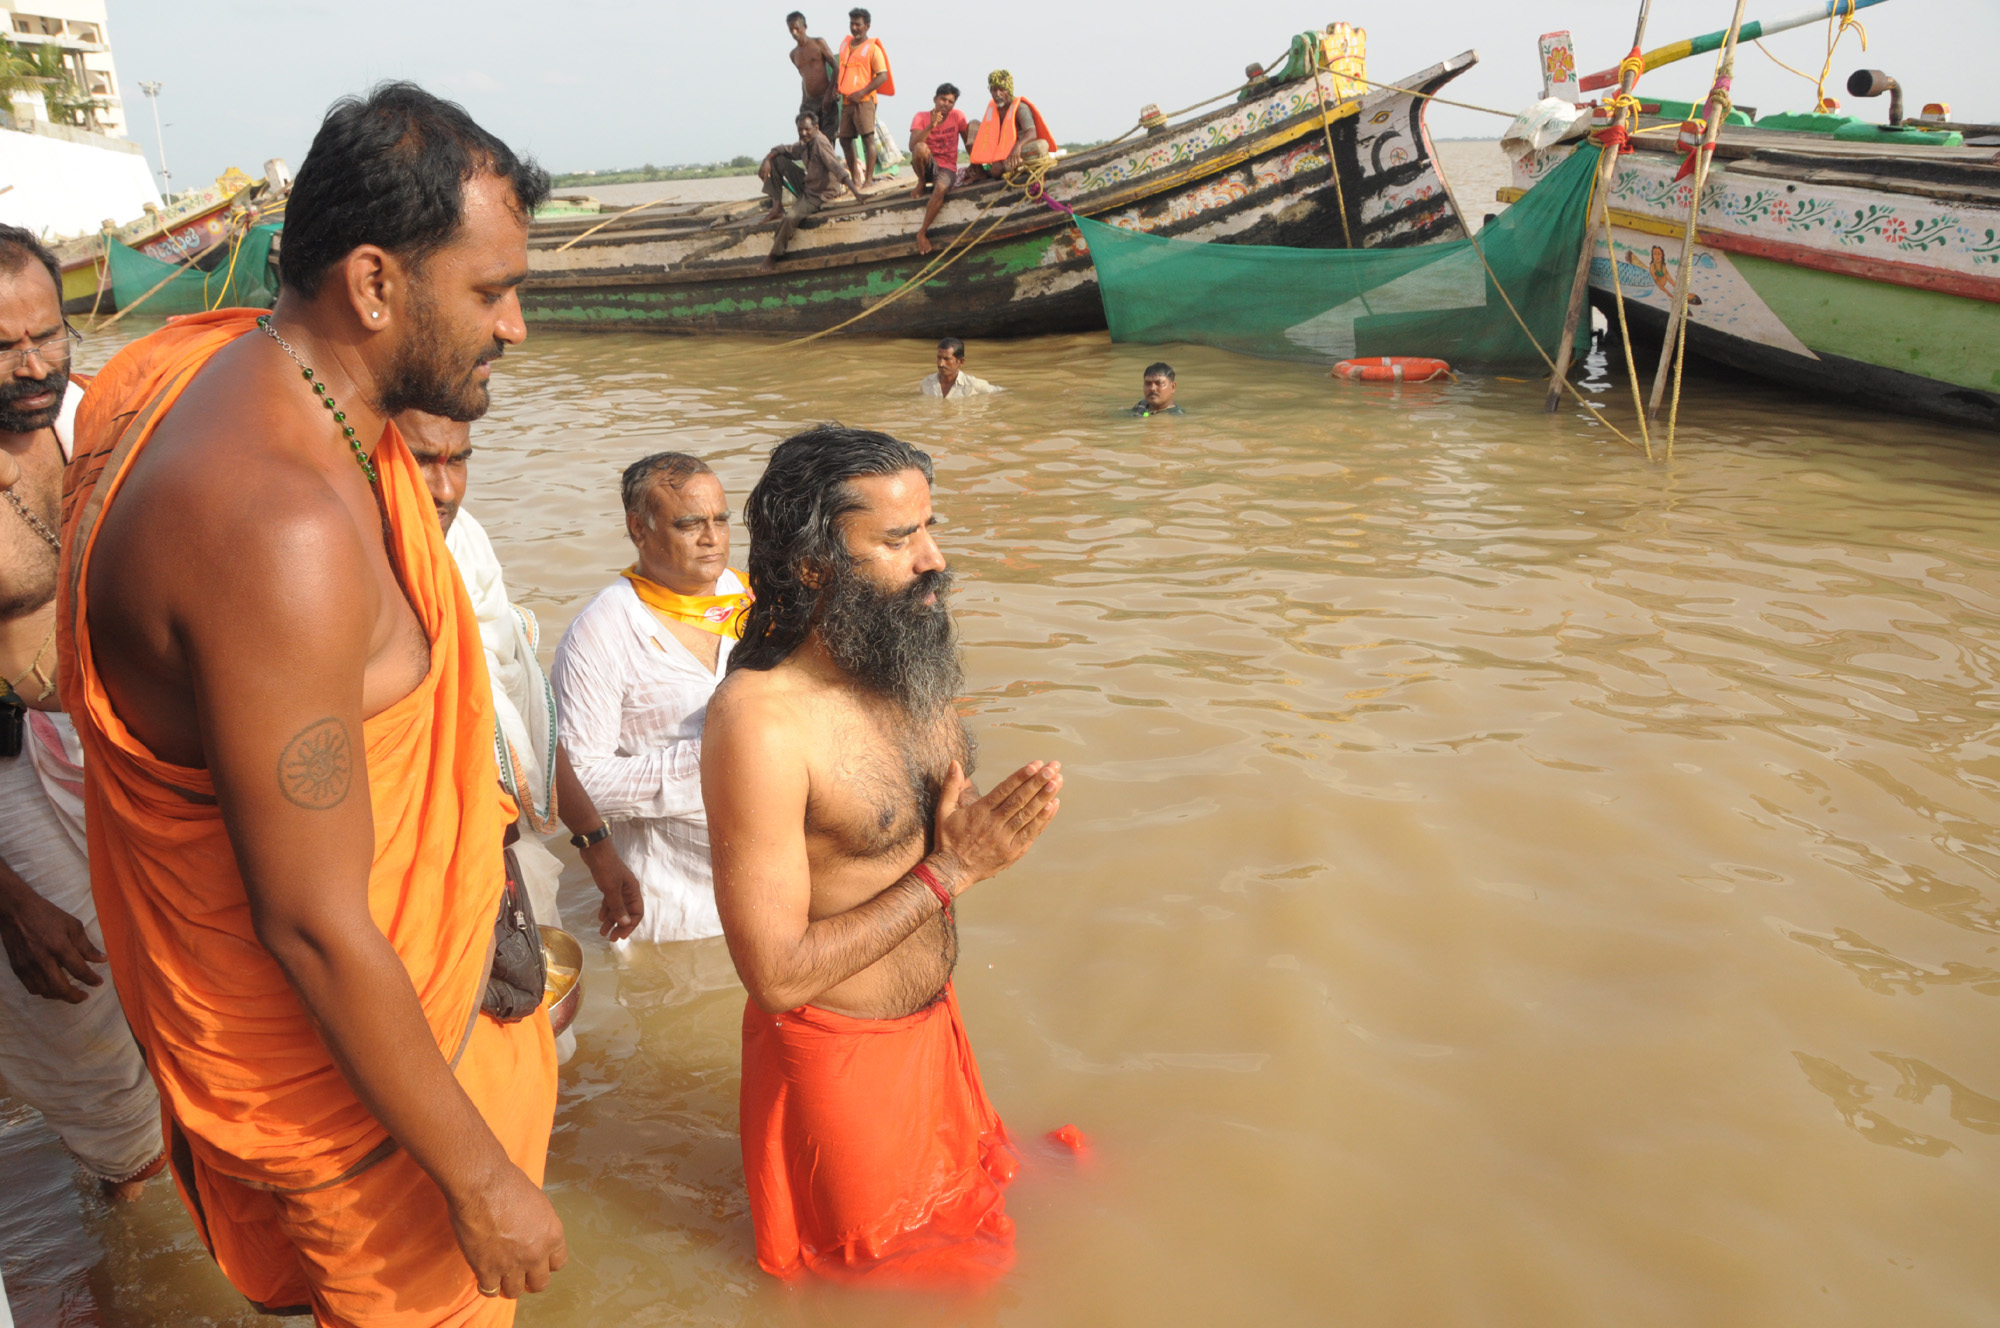 Ramdev Baba take Pushkara Bath in V.I.P. Ghat of Rajahmundry on 25.7.2015 and Mangalampalli bala murali krishna kacheri pics.